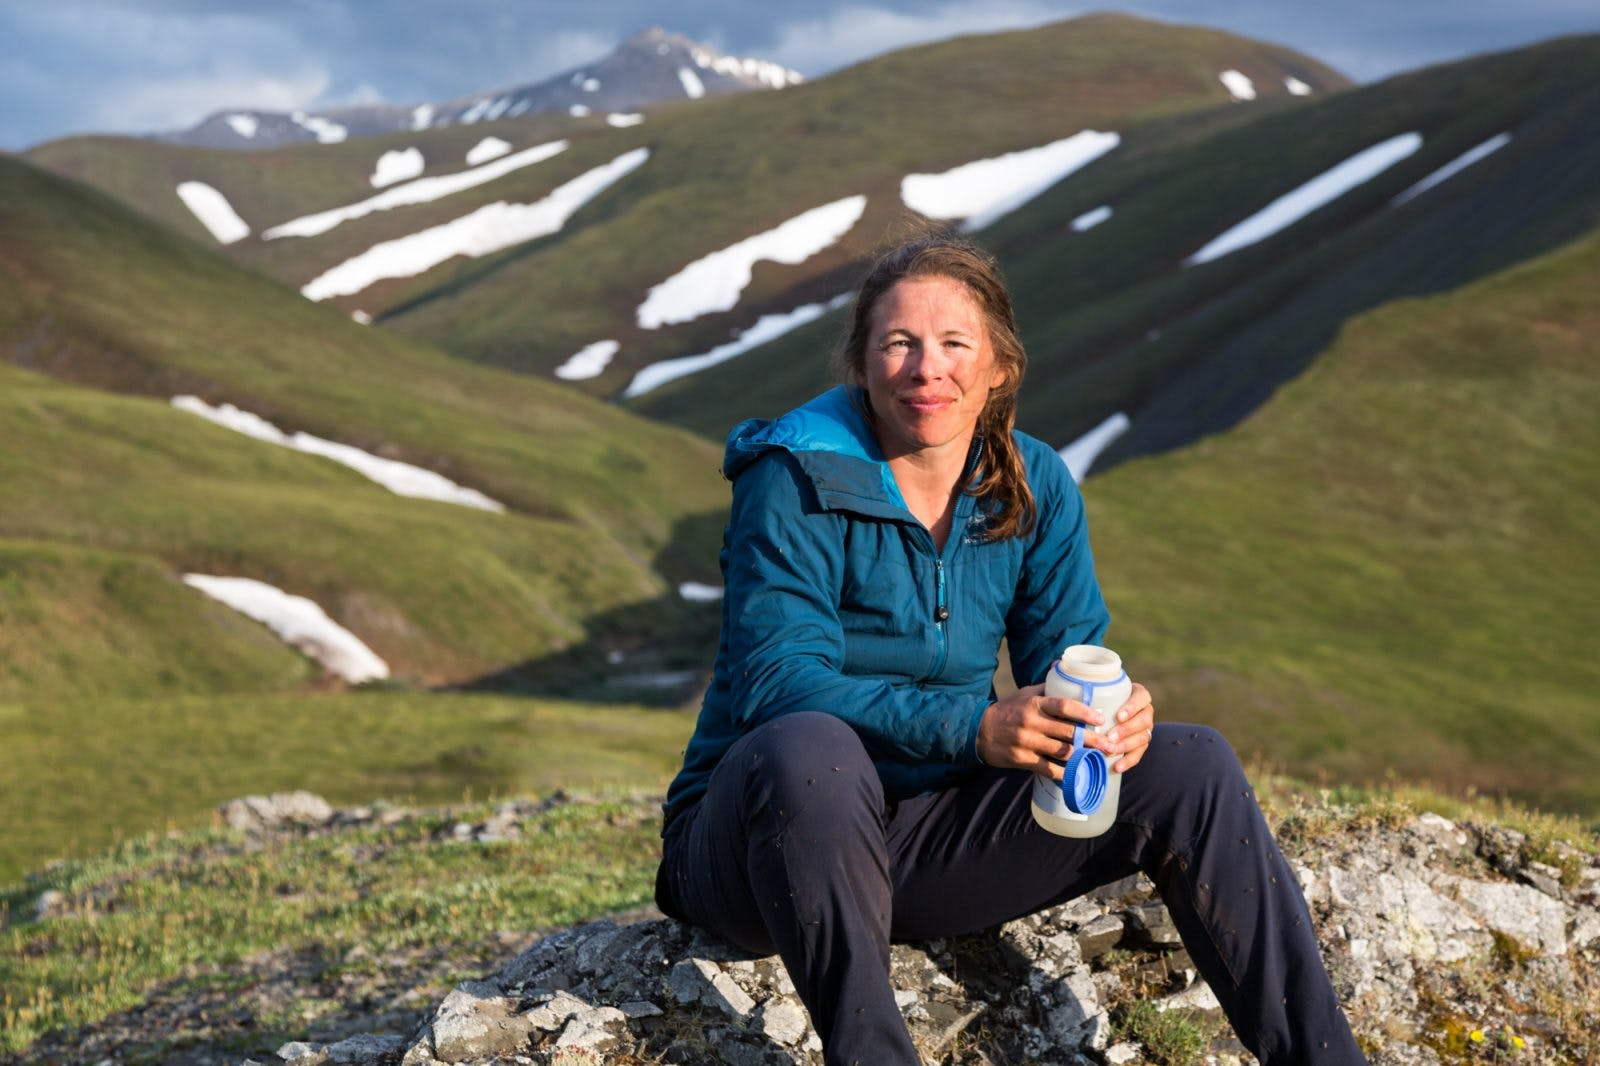 Sarah Histand in Western Brooks Range. Photo by Luc Mehl.